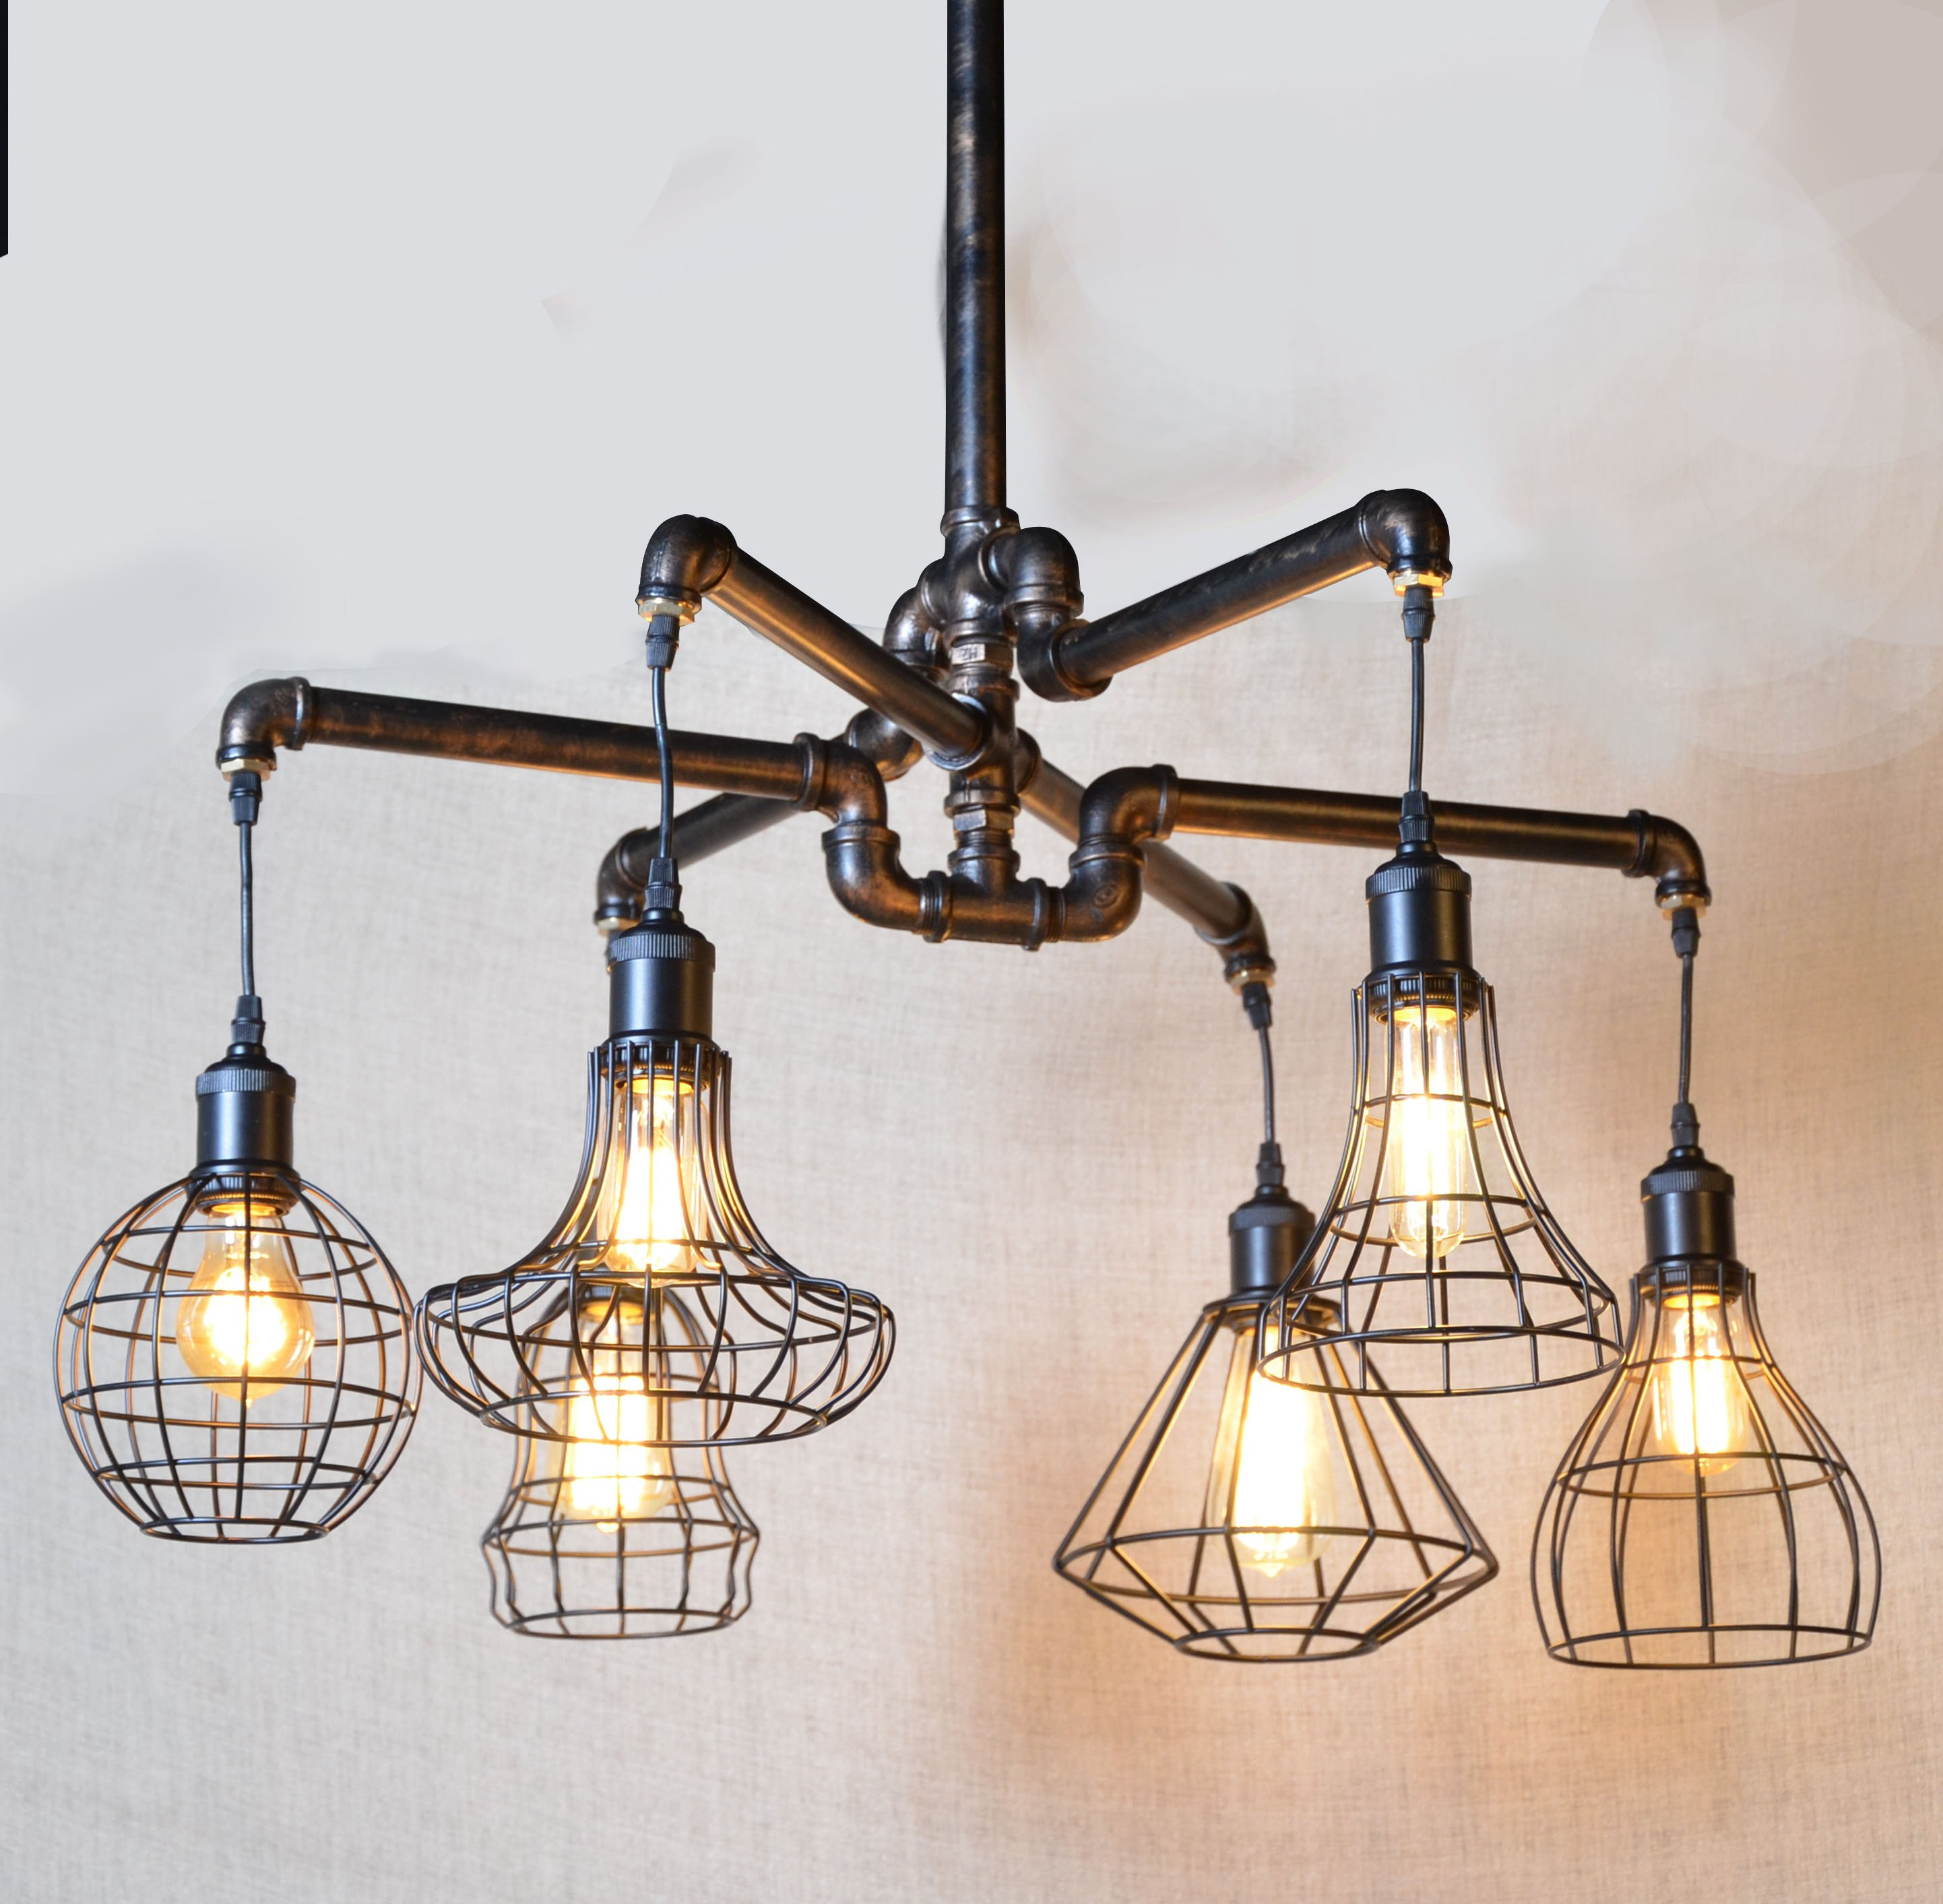 Pipe Light Chandelier Rustic Industrial Black Iron Ceiling Fixture